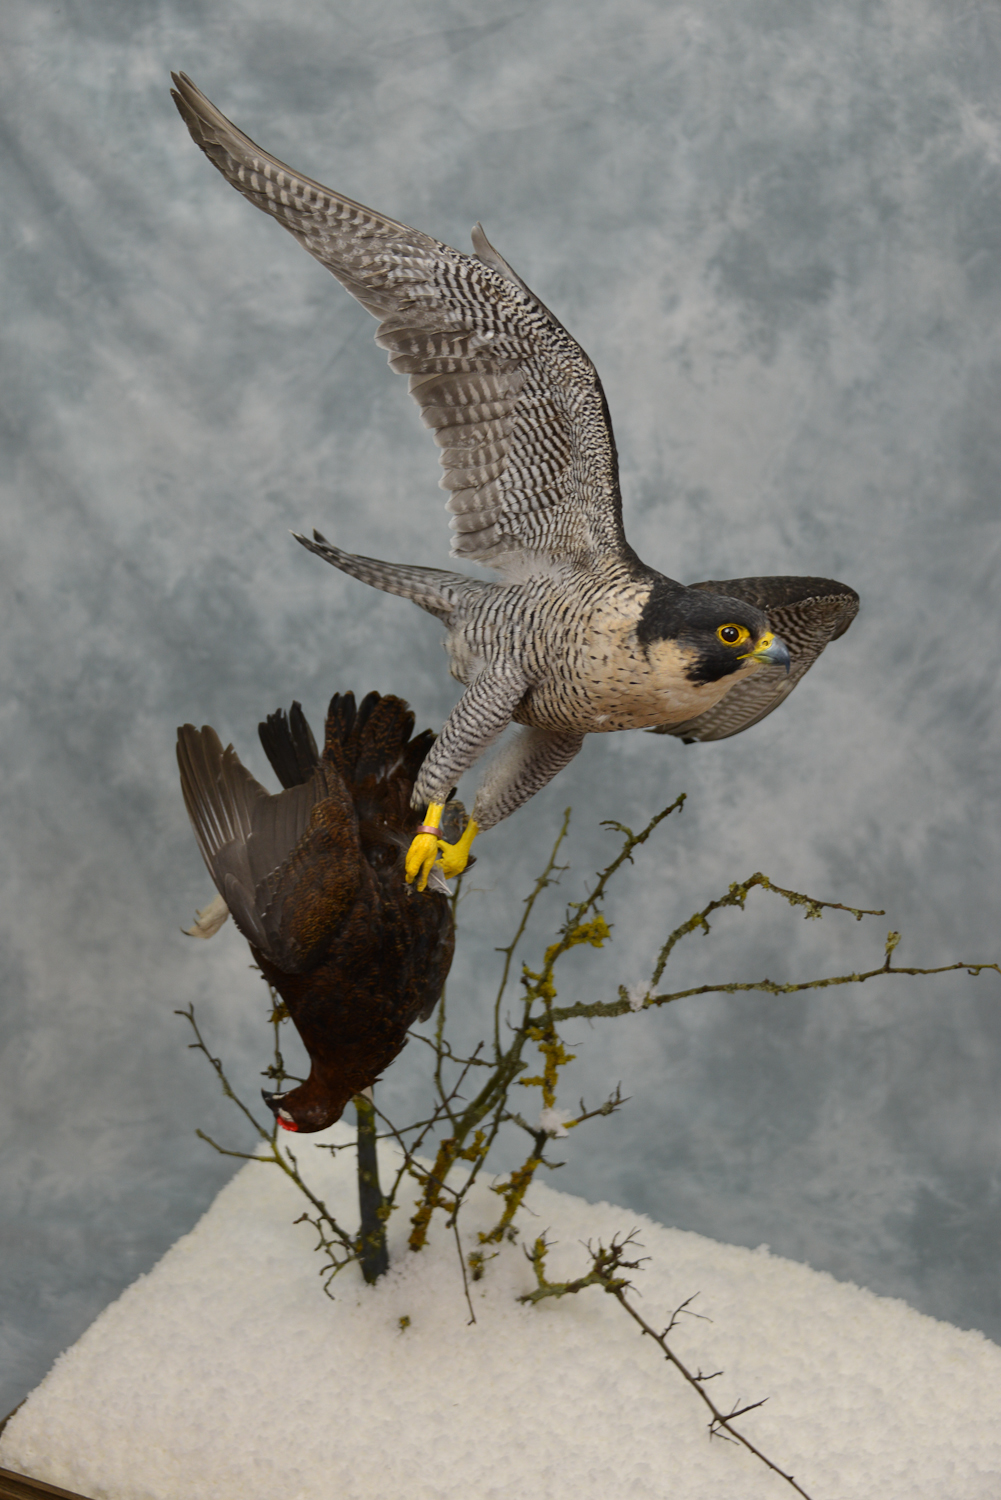 Taxidermy Peregrine Falcon falco peregrinus catching Grouse 18